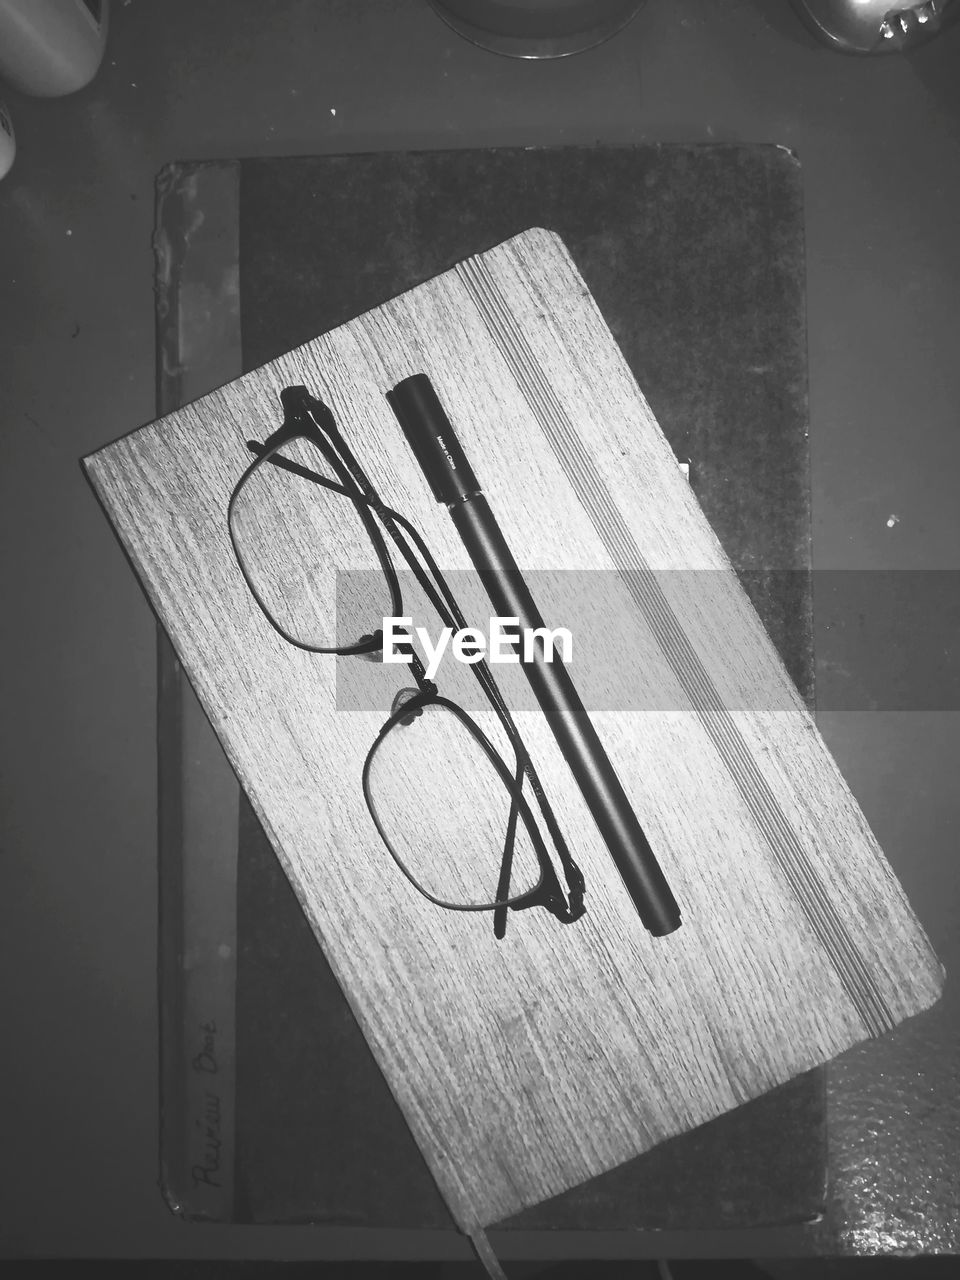 no people, table, indoors, eyeglasses, still life, close-up, high angle view, glasses, paper, wood - material, art and craft, book, creativity, shape, glass - material, publication, geometric shape, pencil, wireless technology, napkin